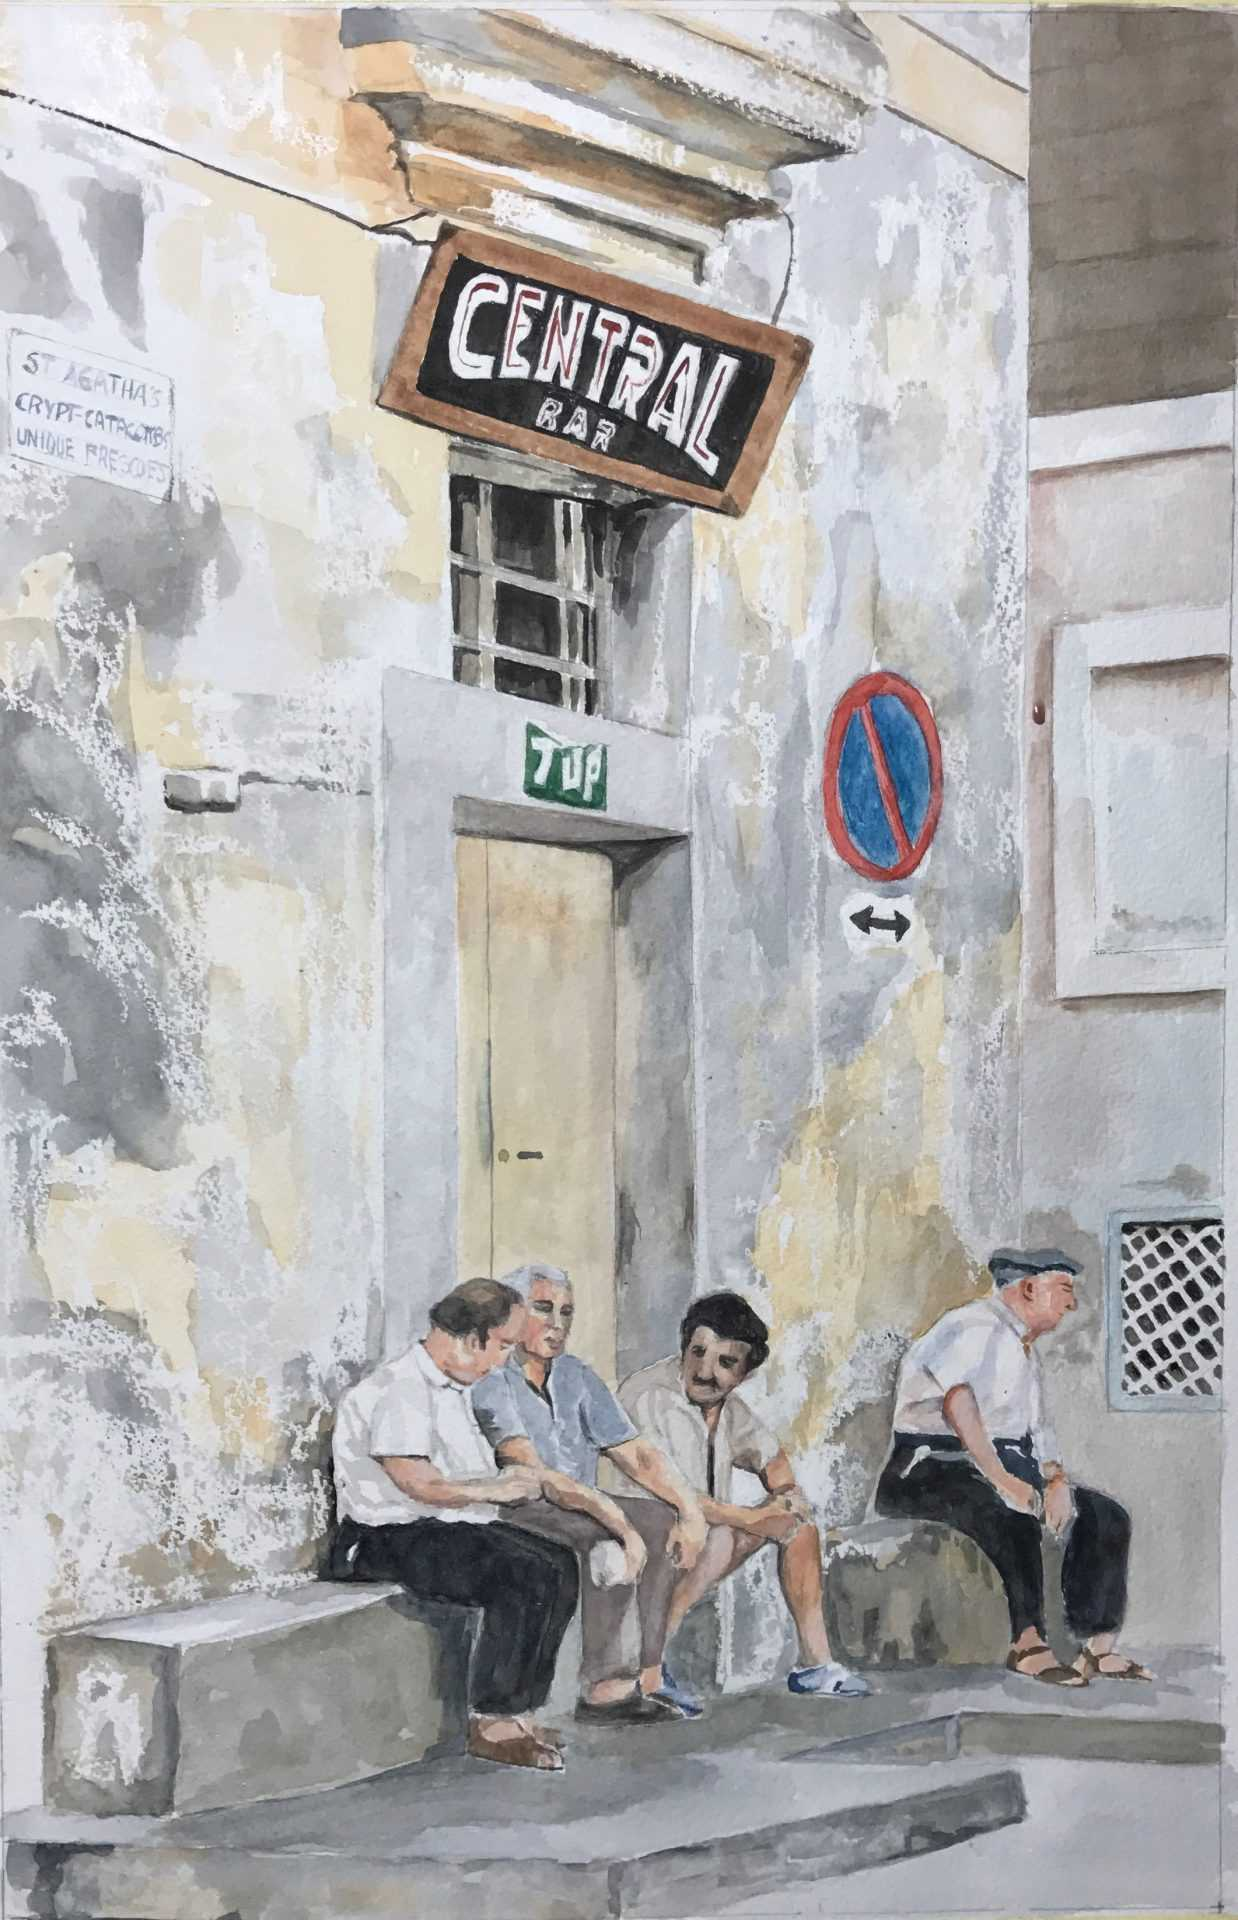 Central Bar in watercolour